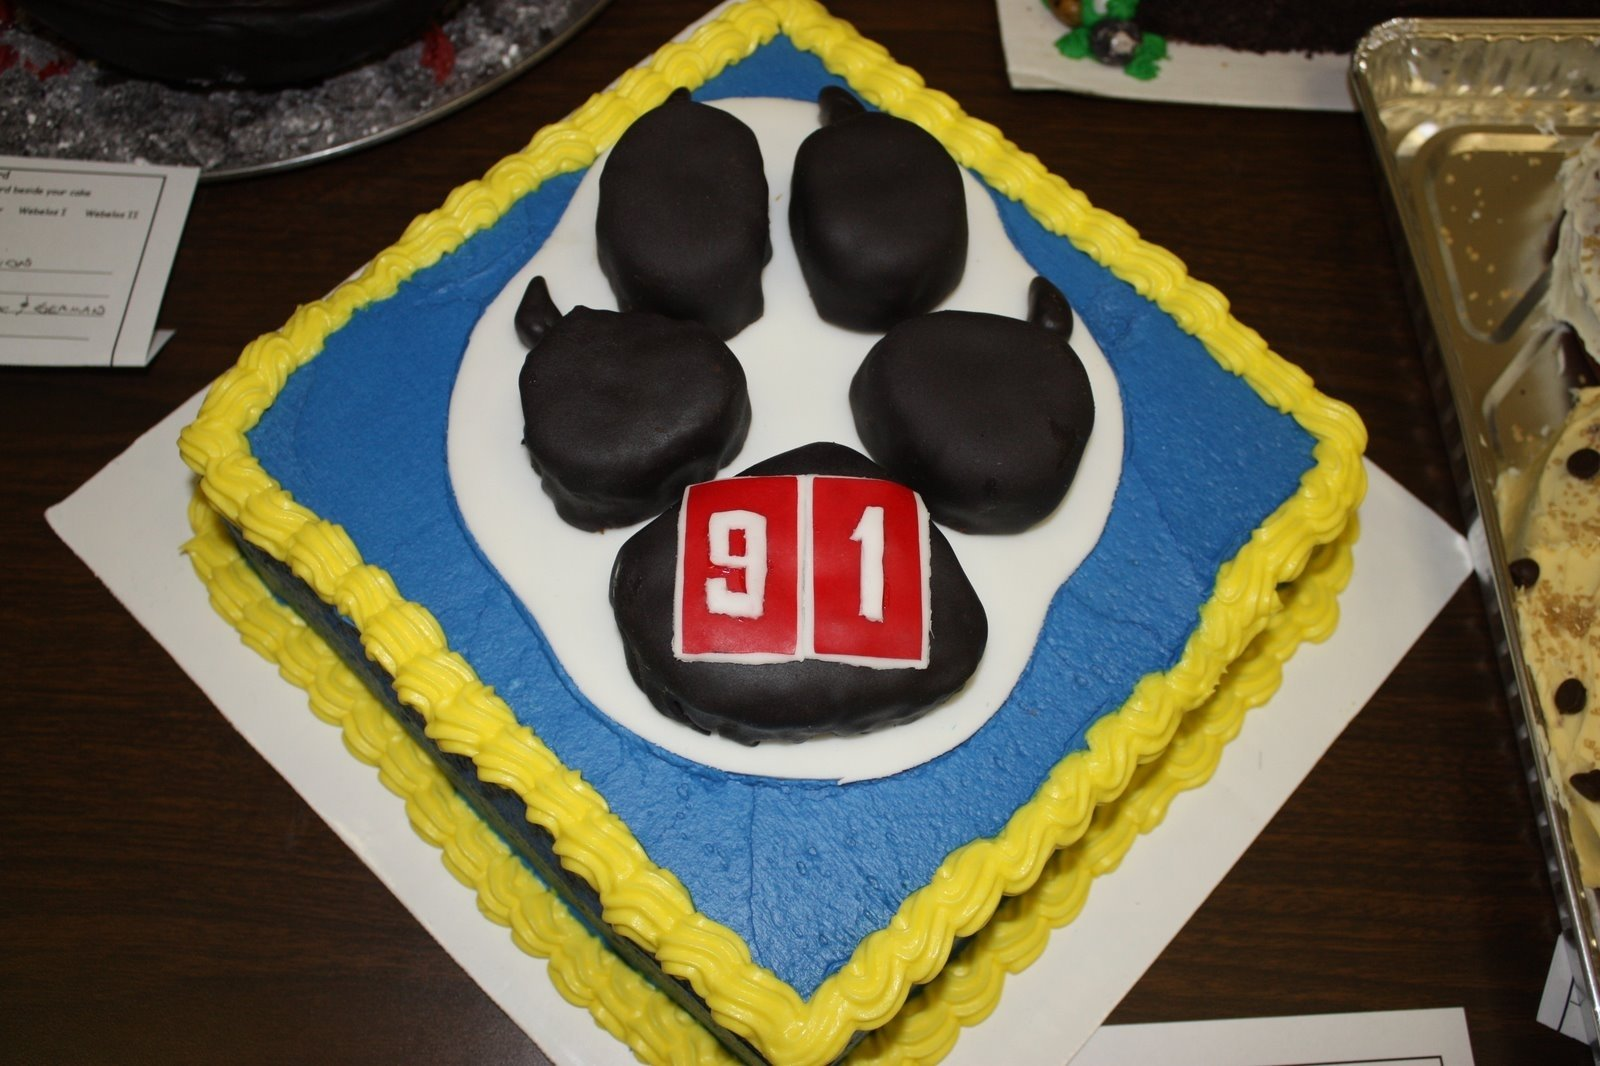 10 Cute Cub Scout Cake Decorating Ideas recipes archives home is where my story begins 2020